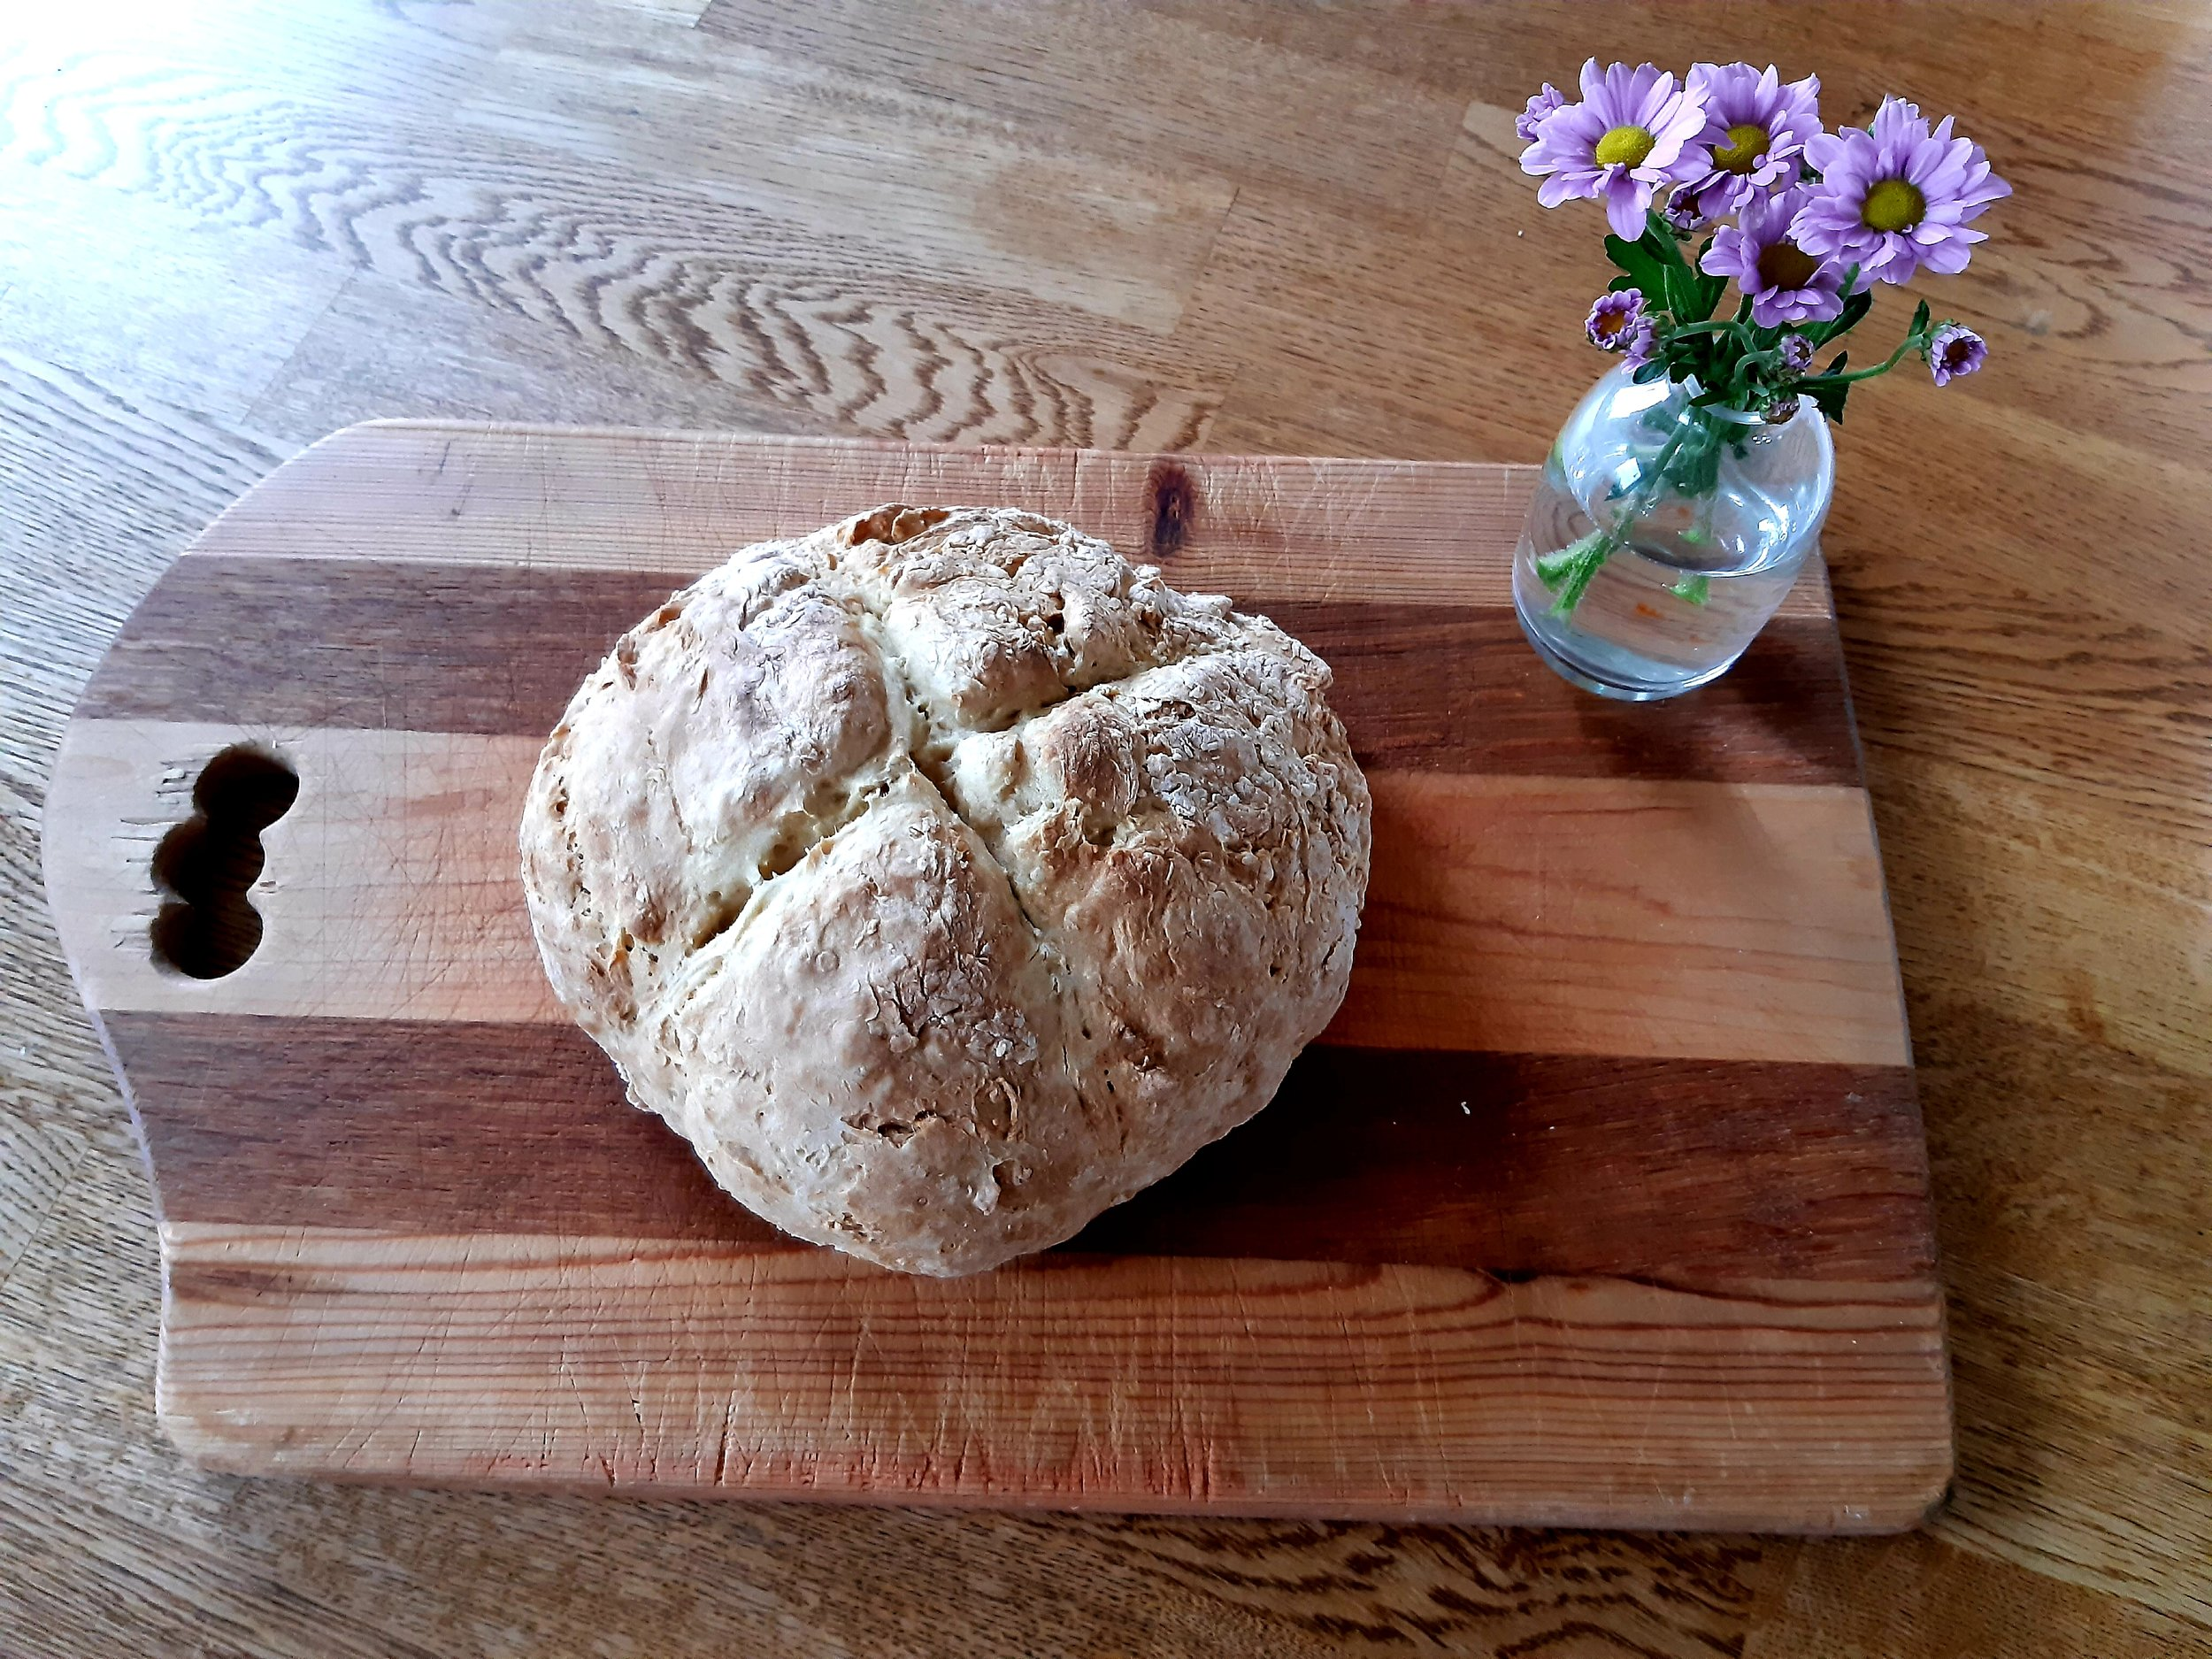 - This is what happens when my husband takes the kids to work for the day. I finished an entire client gallery AND I made my very first Irish soda bread. It was a roaring success with the Jolly gang :)